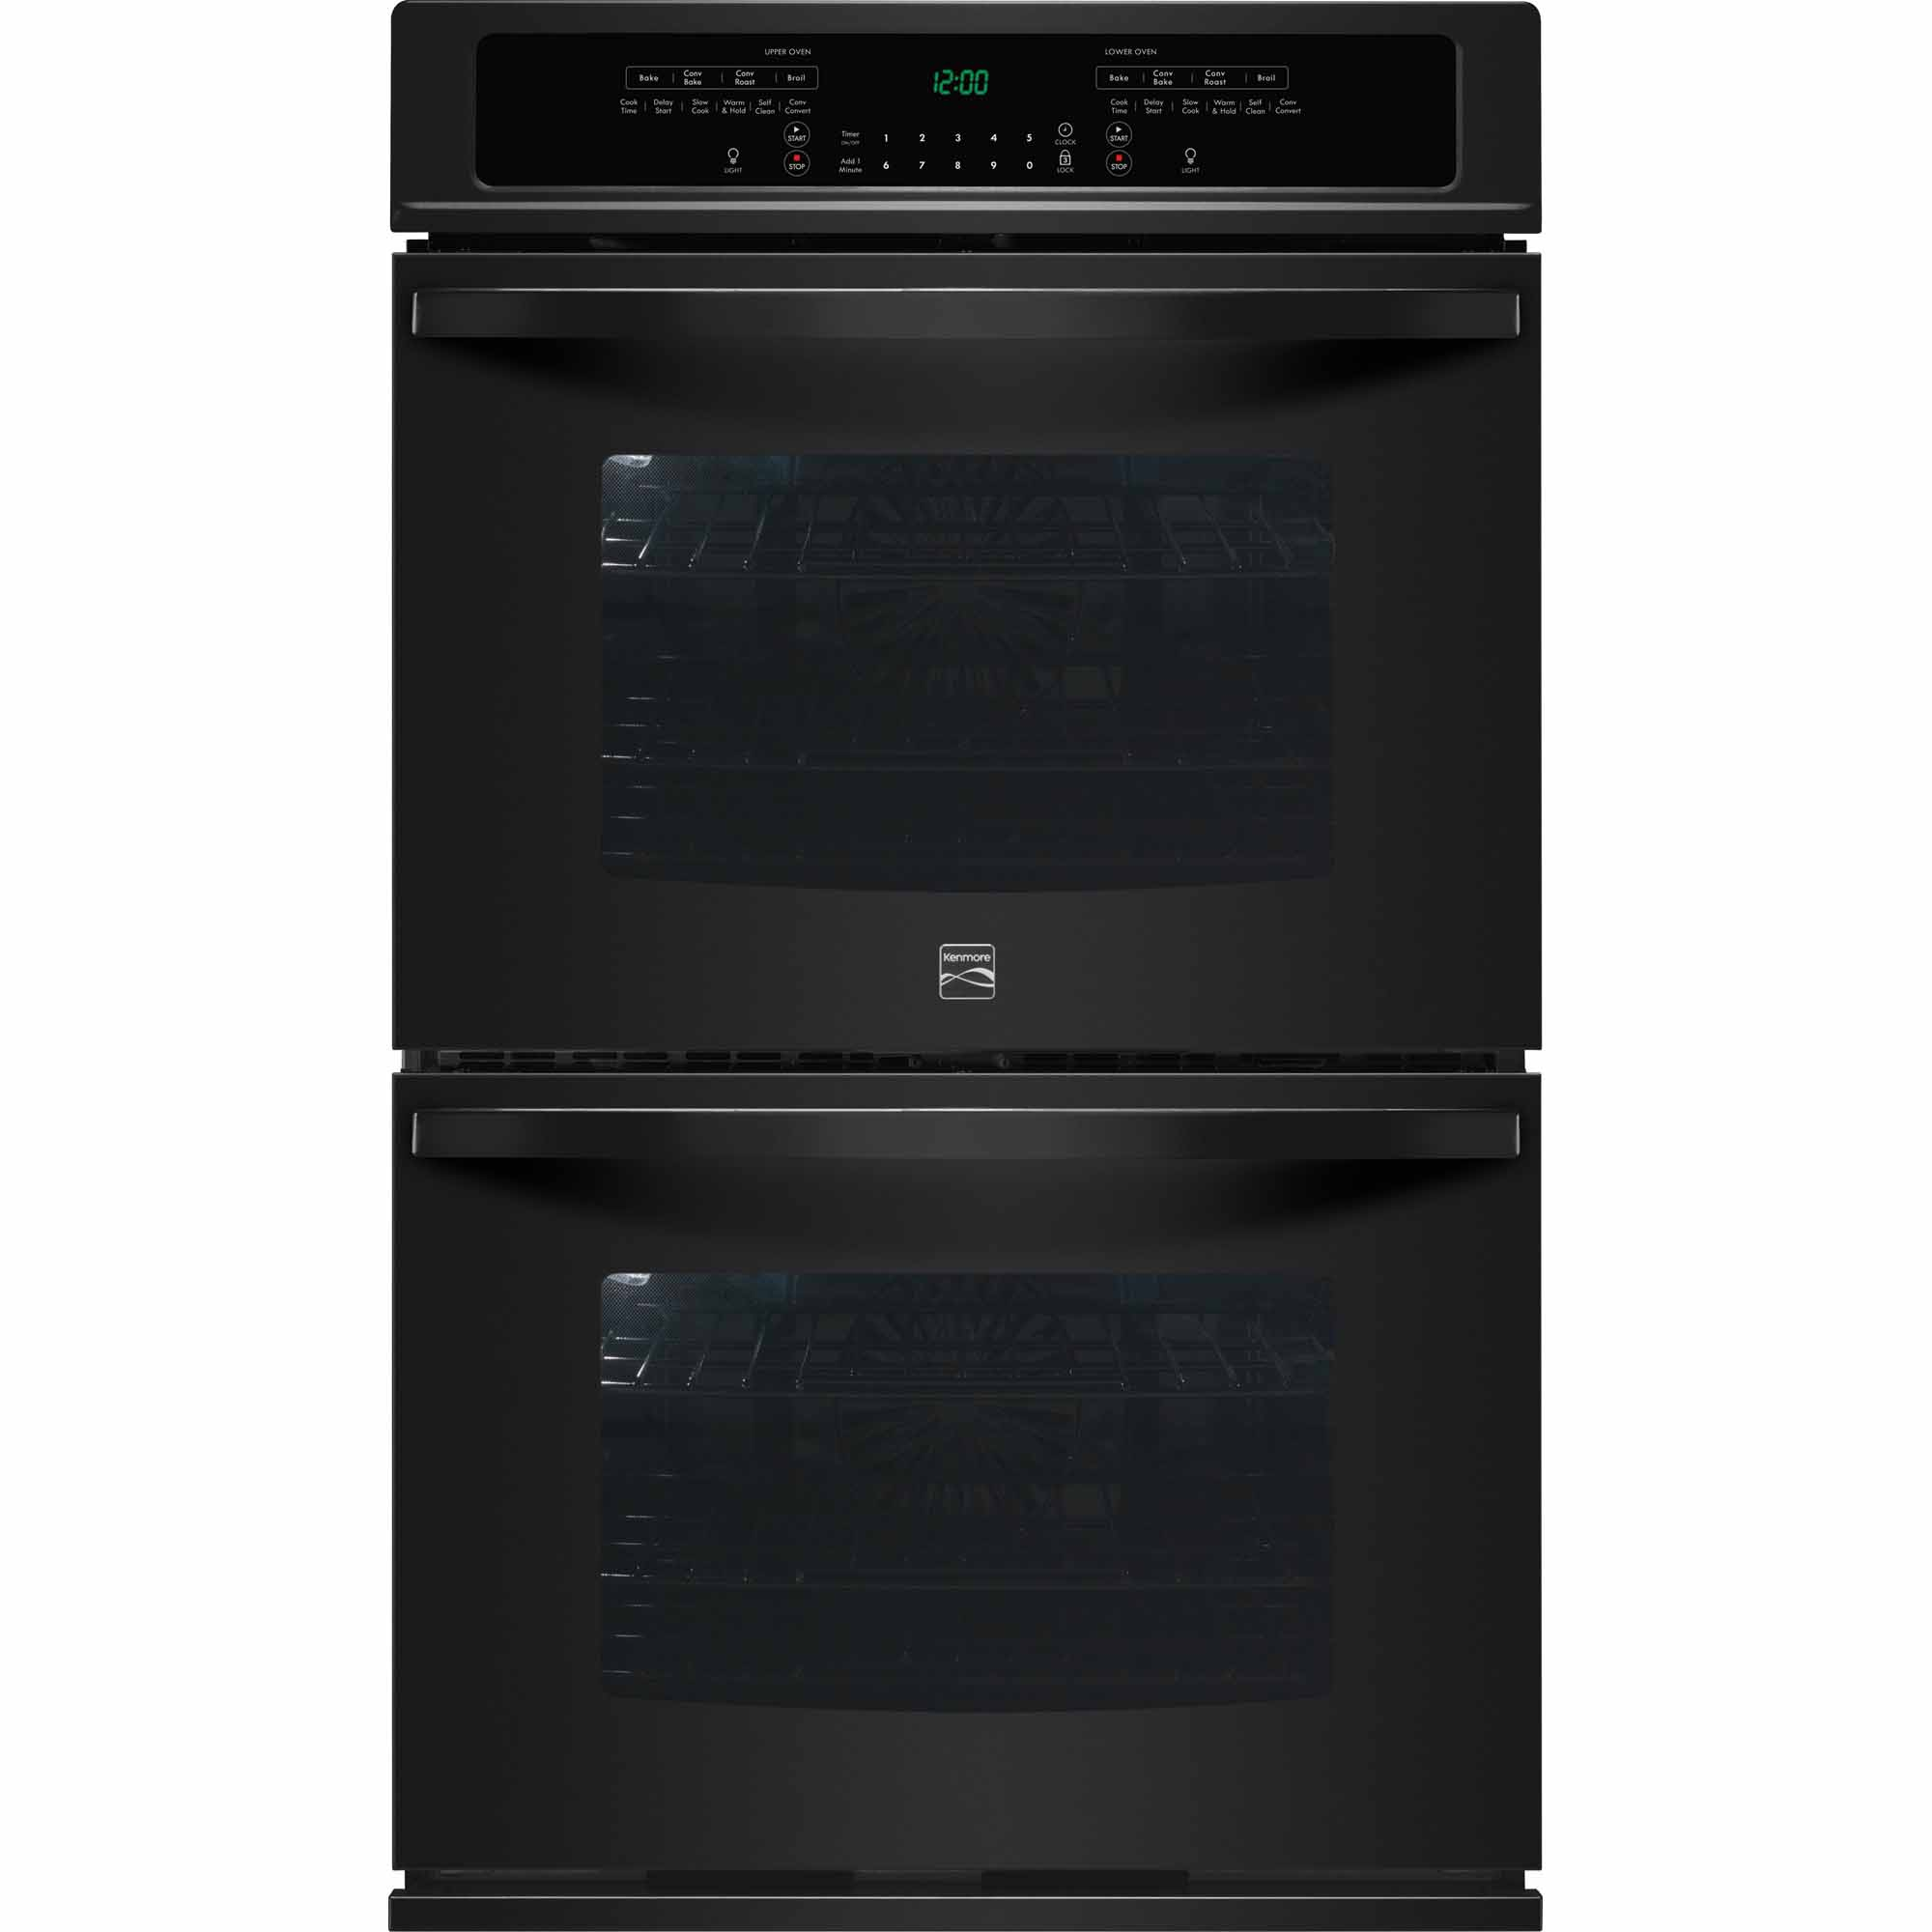 Kenmore 49539 30 Self-Clean Double Electric Wall Oven w/ Convection - Black